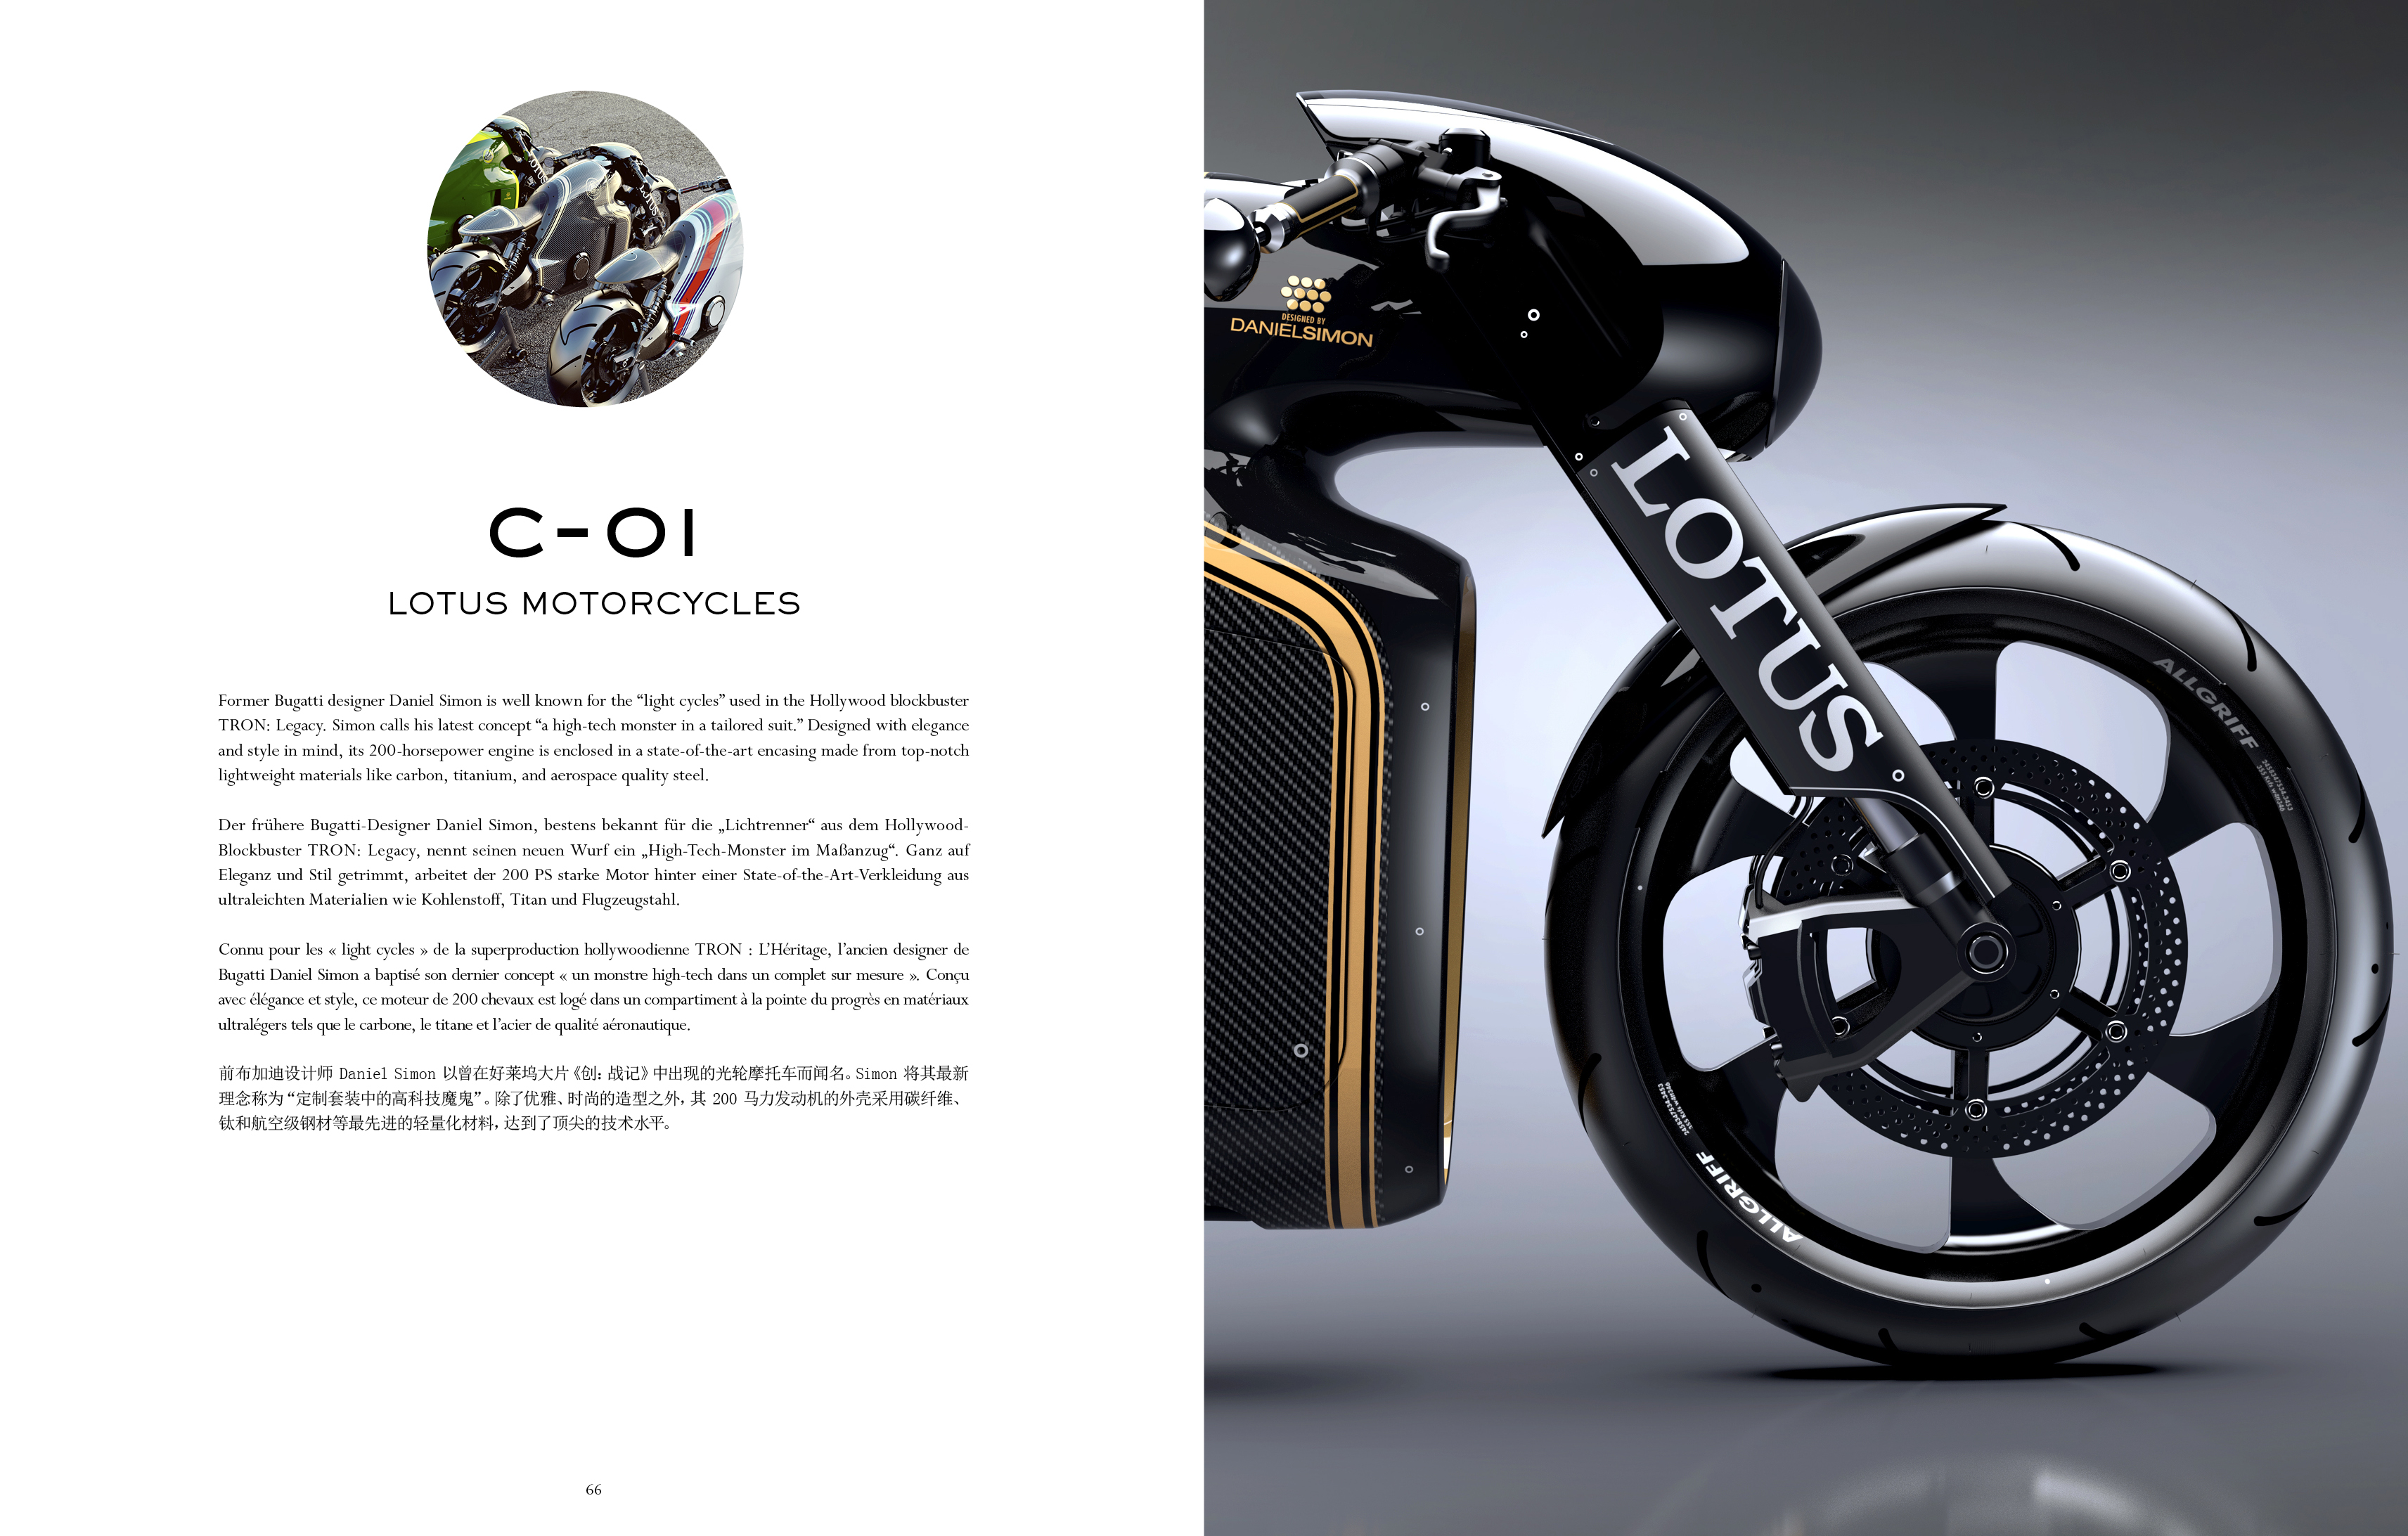 c-oi LOTUS MOTORCYCLES